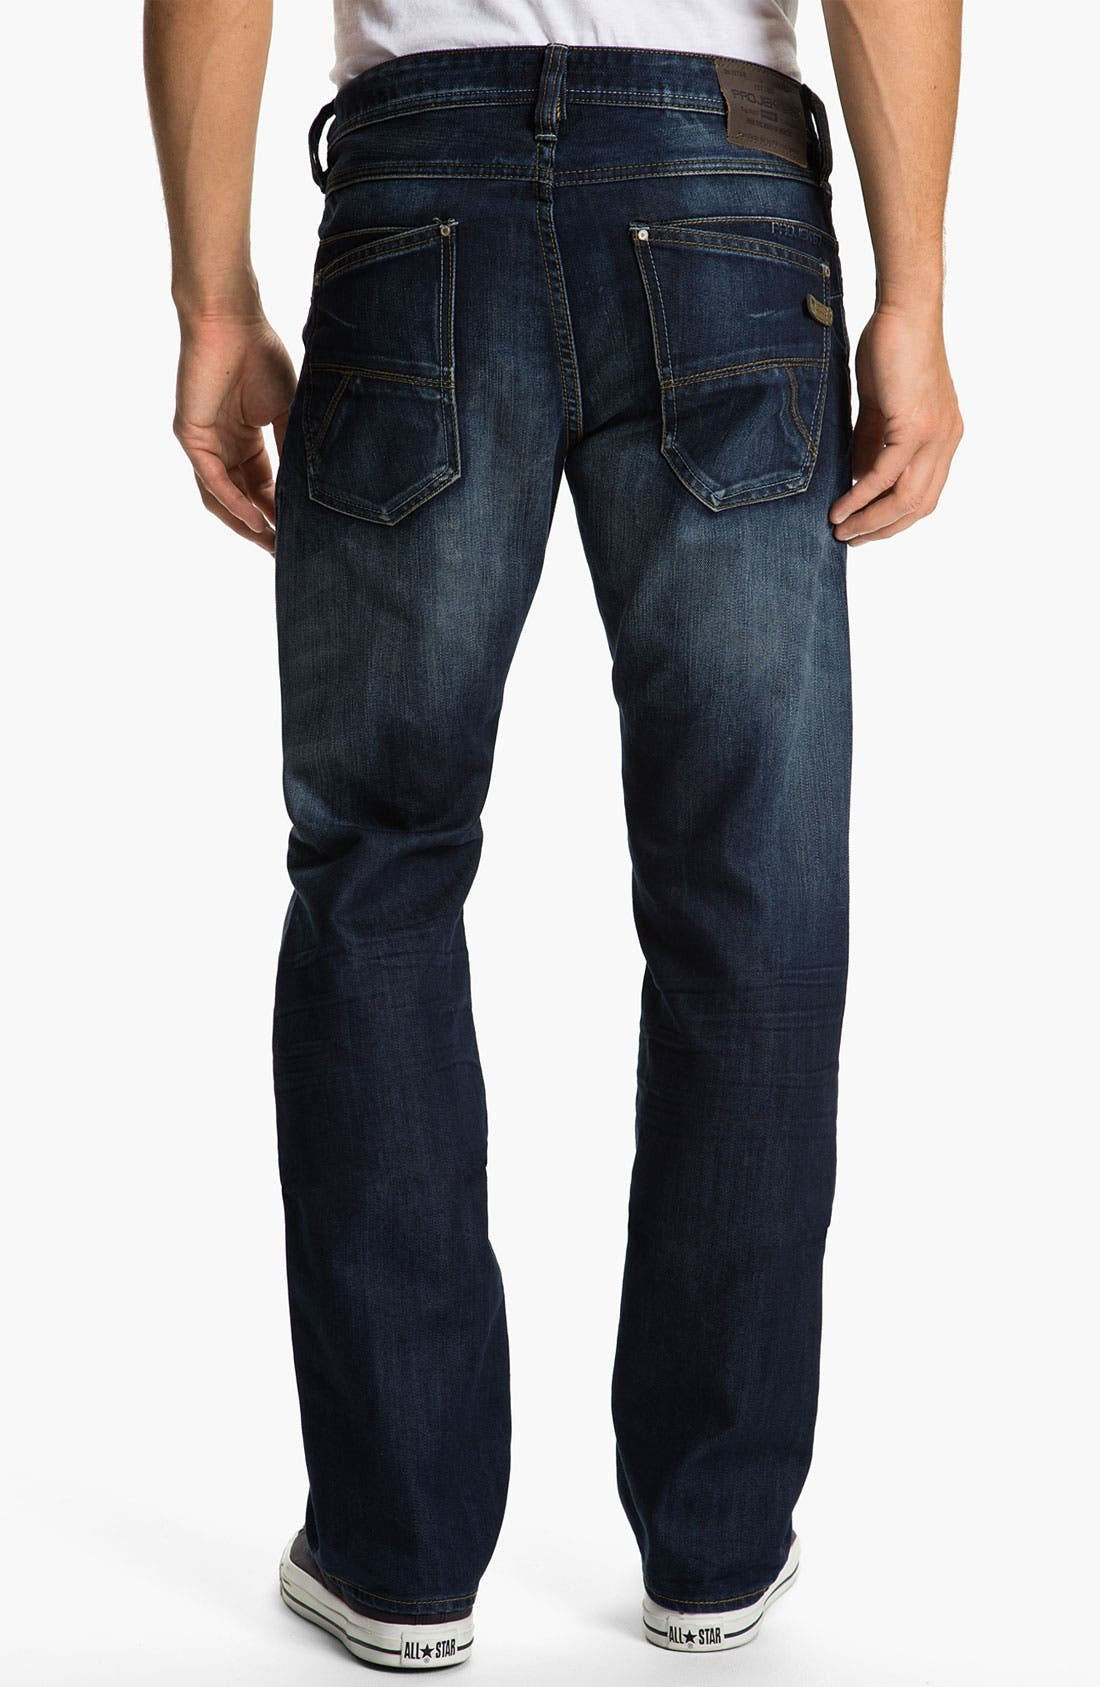 Alternate Image 1 Selected - Projek Raw Relaxed Straight Leg Jeans (Blue)